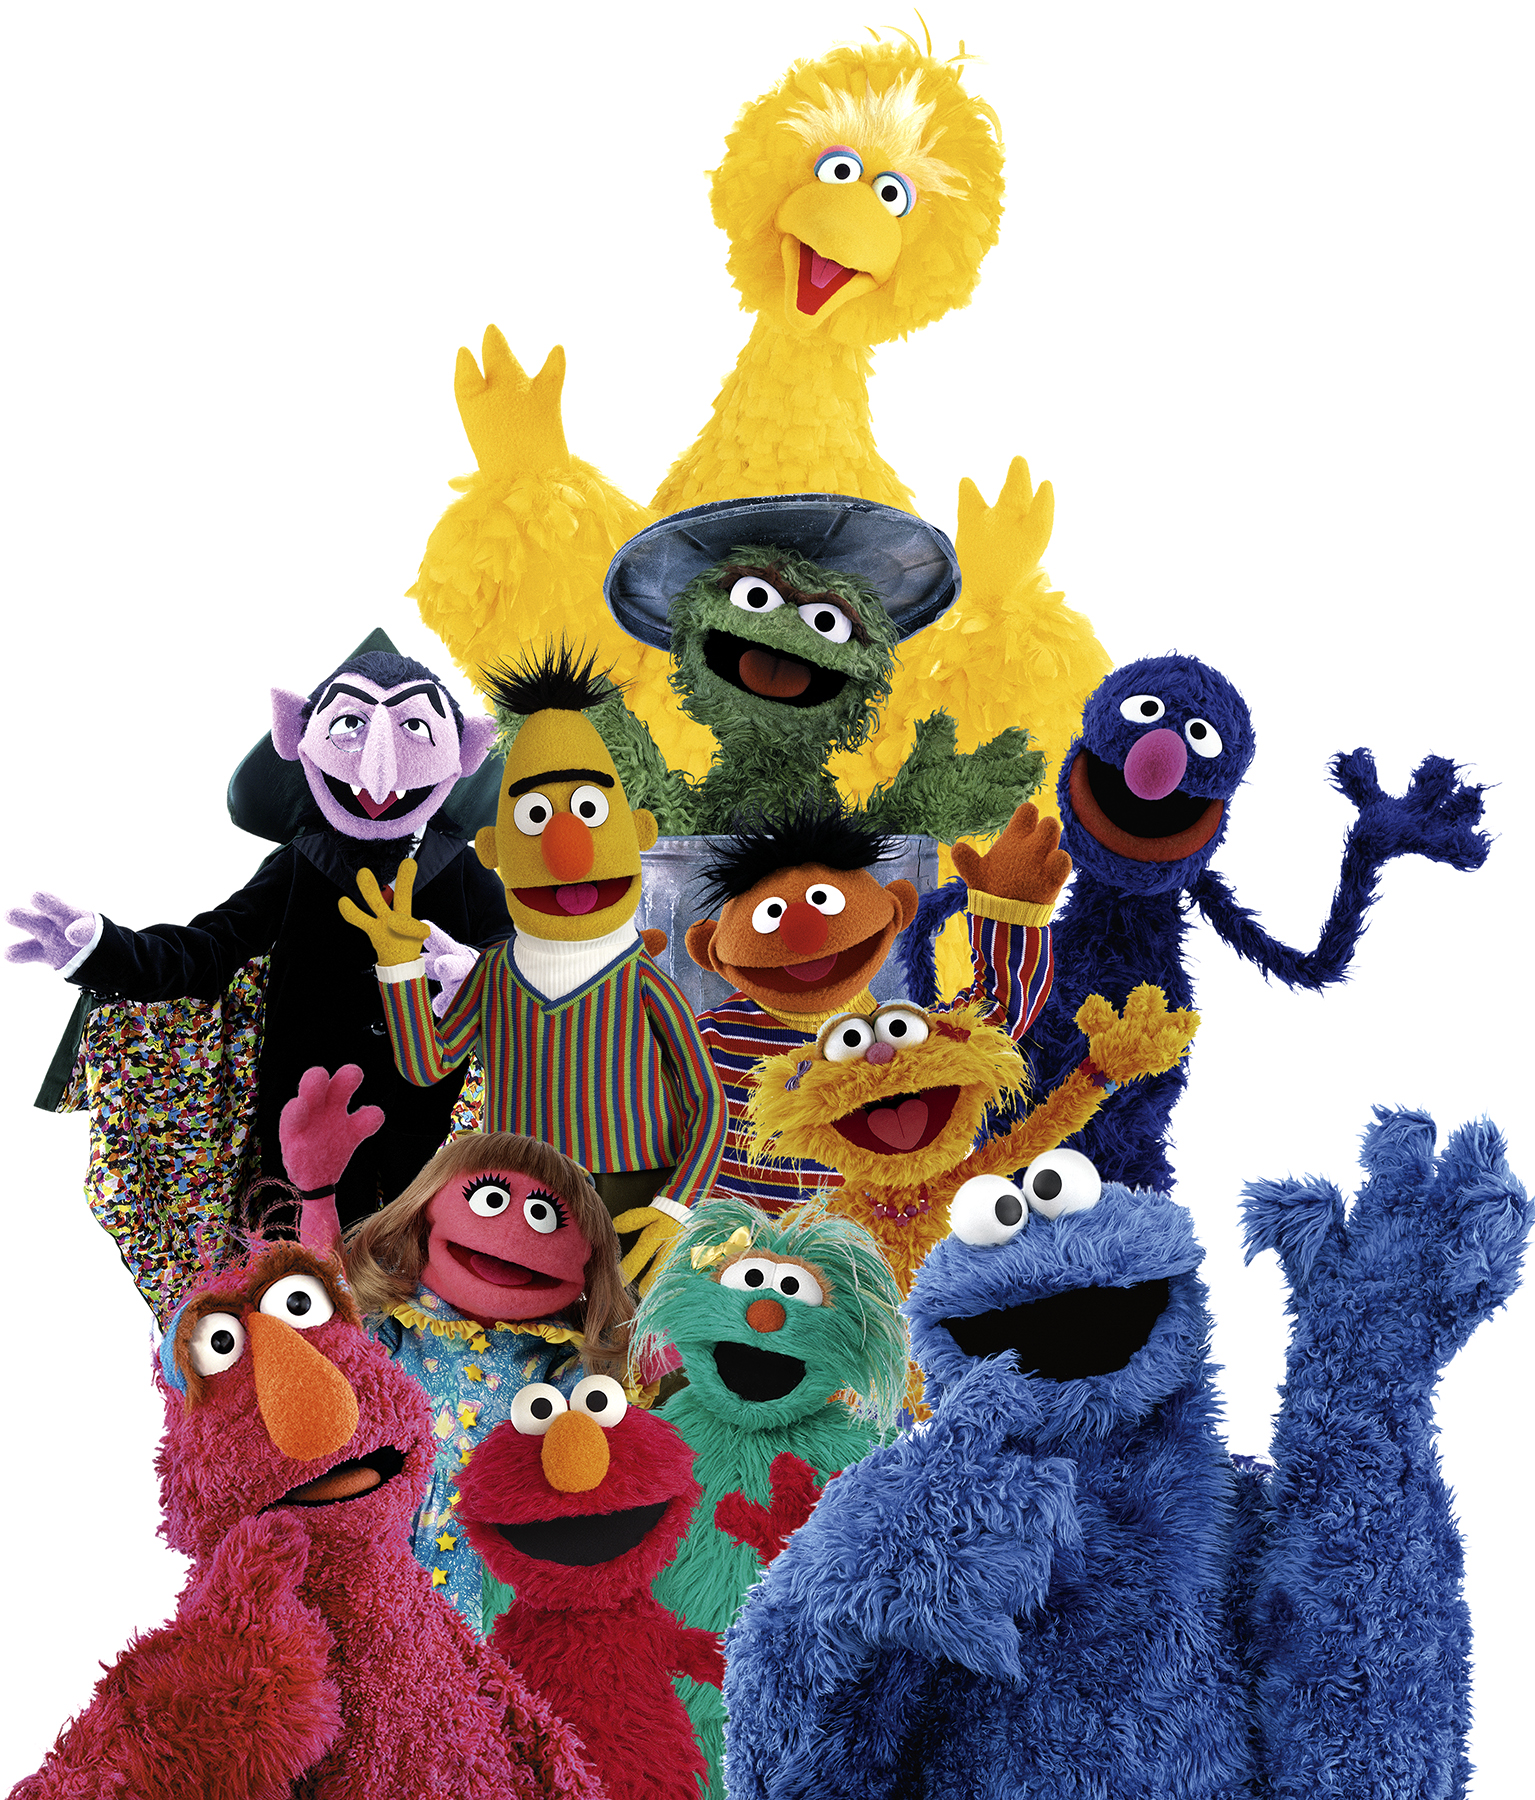 The Sesame Street Character Youd Most Like To See In The White House Is A Tie in addition Newmillenniumwritings together with Debbie Gibson Pictures additionally 2747311 as well Printable Academy Award Ballot. on oscar results tonight